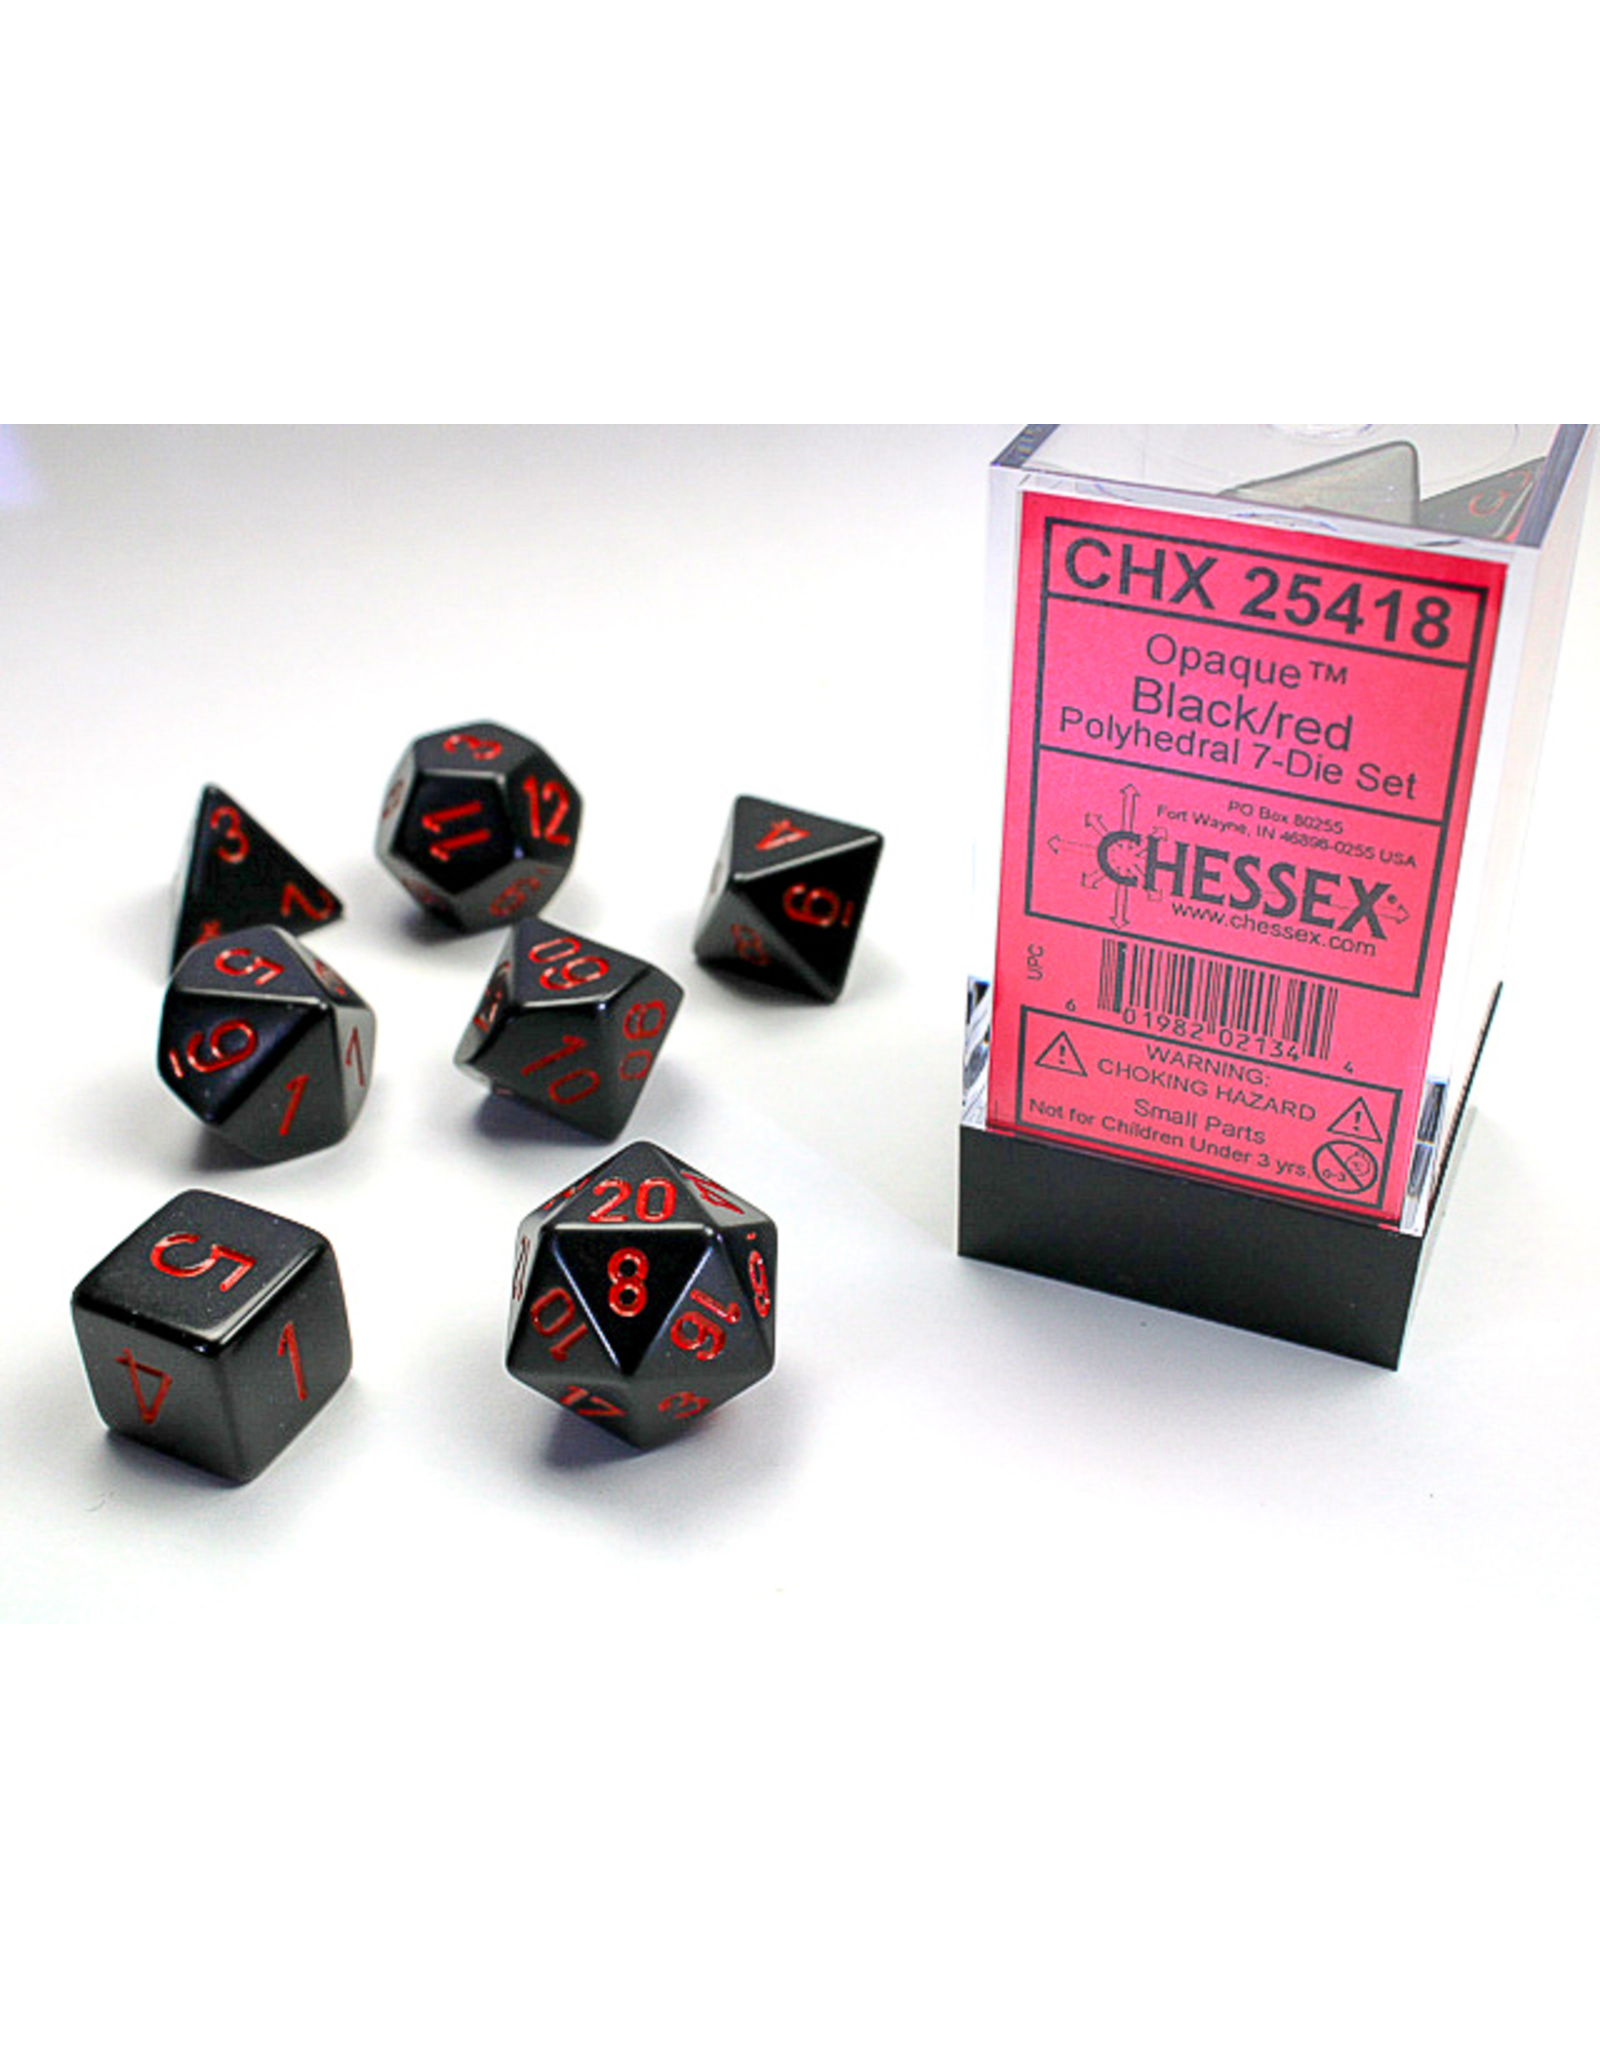 Chessex Dice: 7-Set Cube Opaque Black with Red Numbers (CHX)